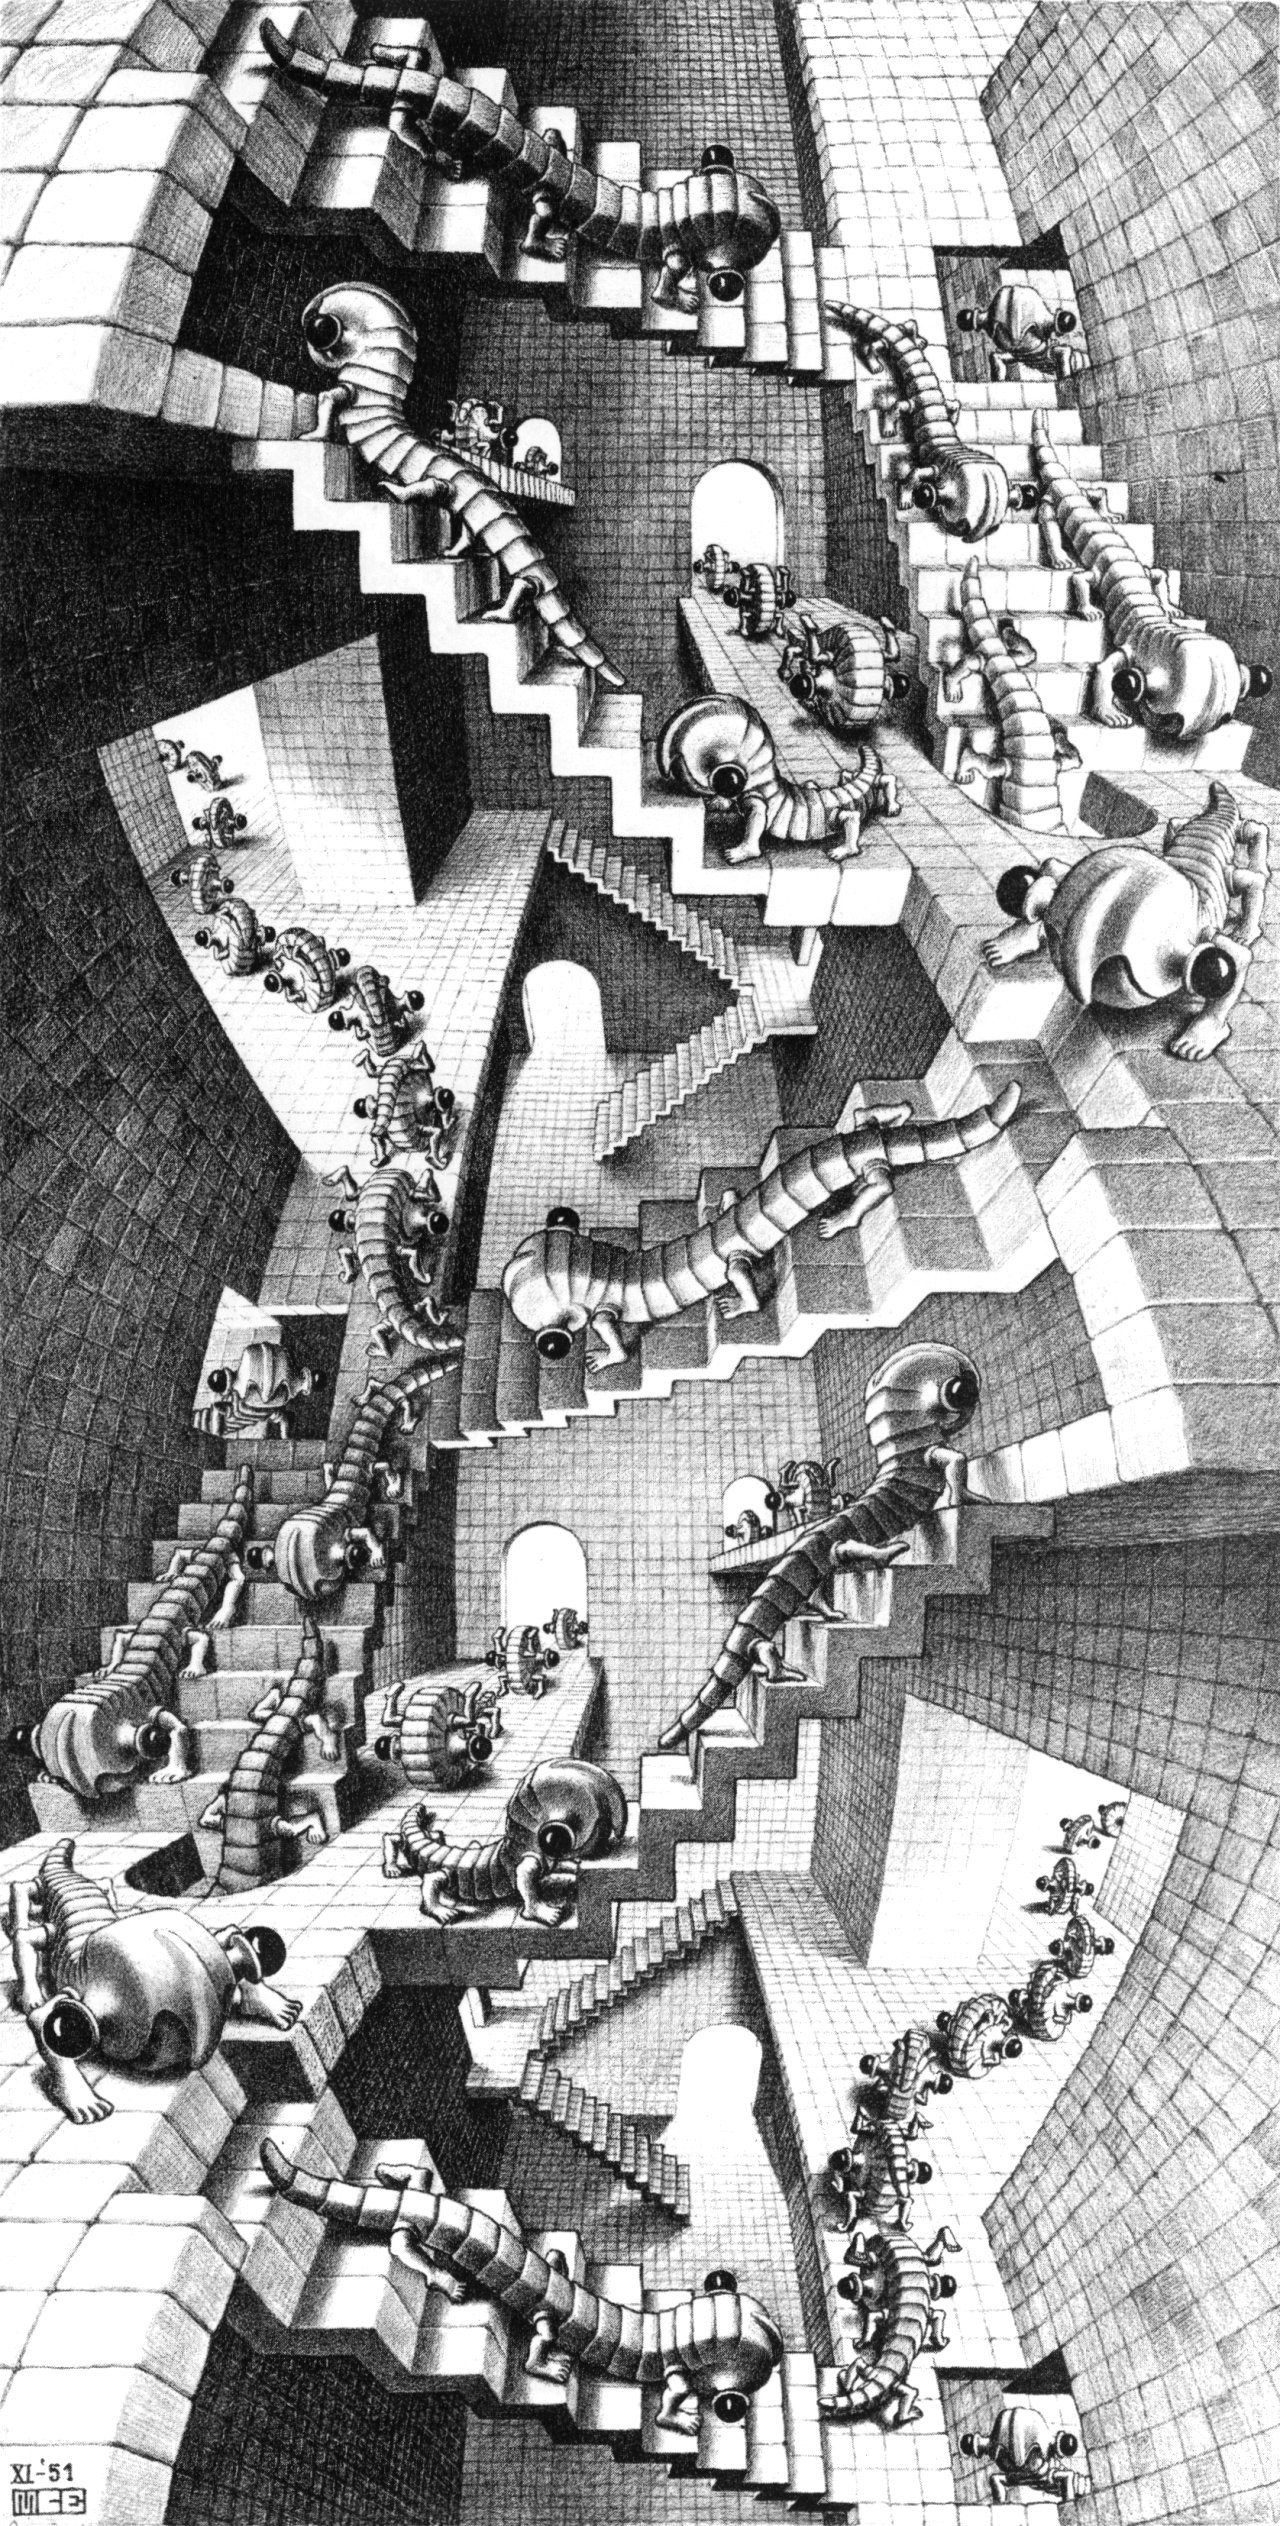 House of Stairs is a lithograph print by the Dutch artist M. C. Escher  which was first